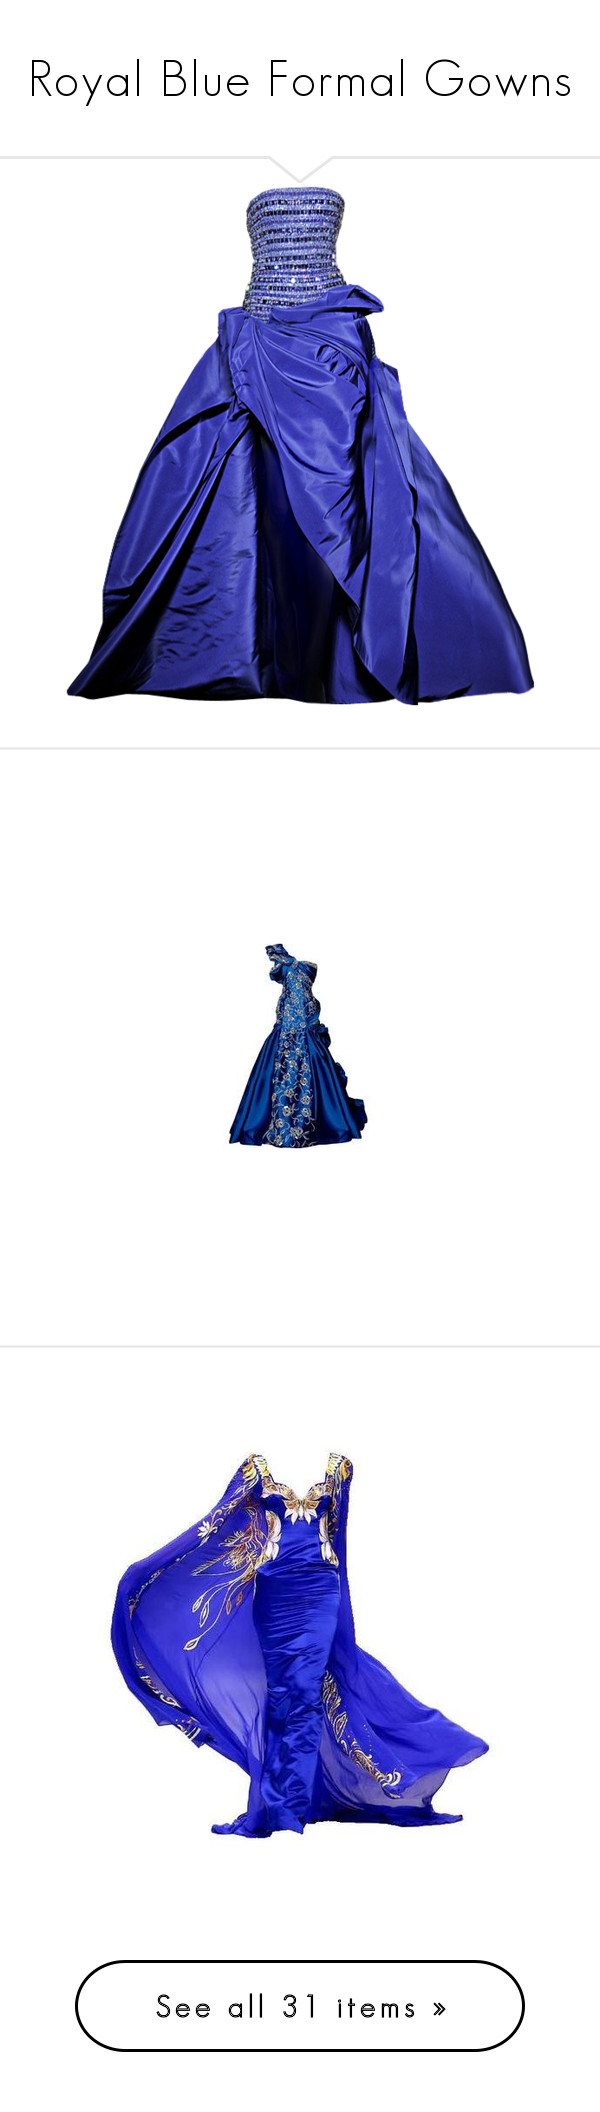 """Royal Blue Formal Gowns"" by kginger ❤ liked on Polyvore featuring dresses, gowns, long dresses, blue, vestidos, blue evening gown, blue evening dresses, long blue dress, long blue evening dress and blue gown"